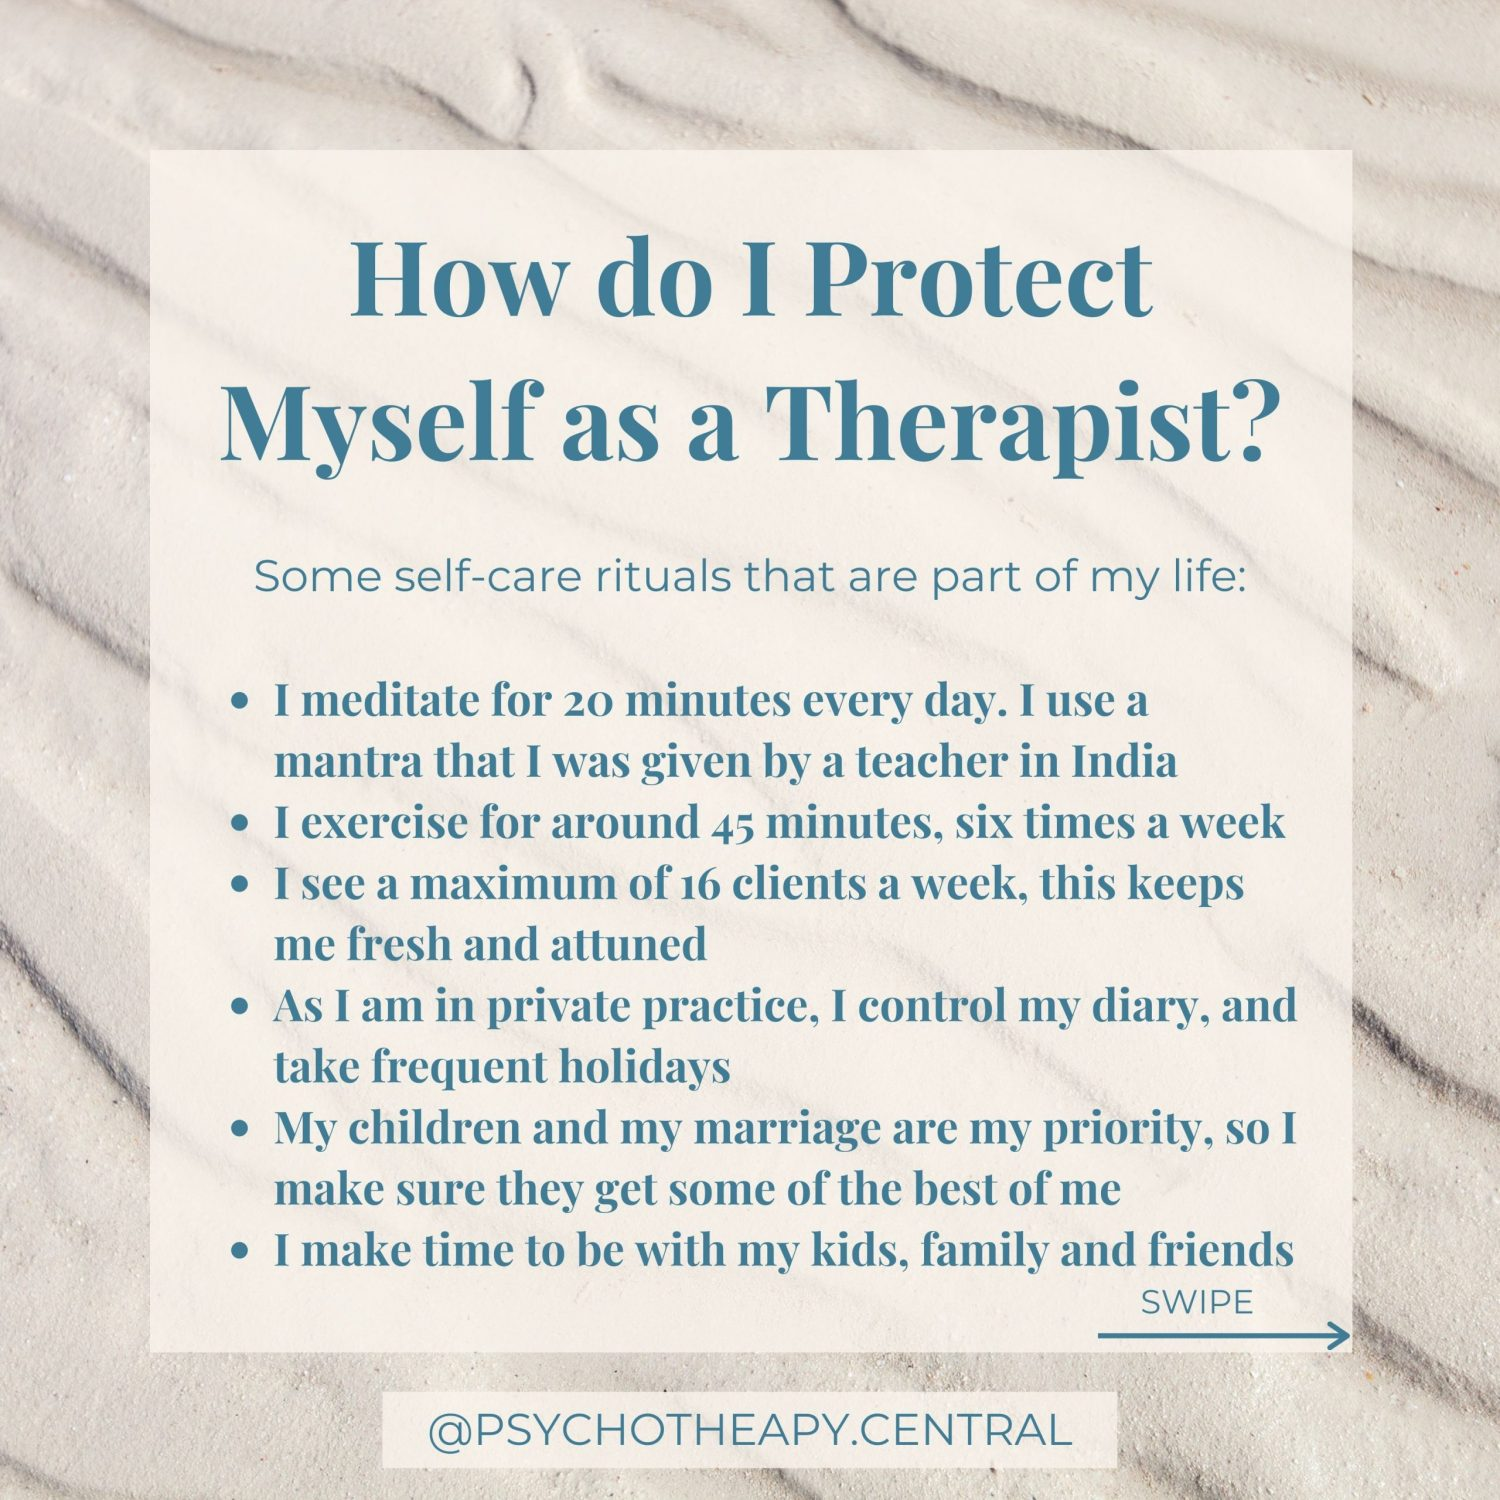 How do I protect myself as a therapist